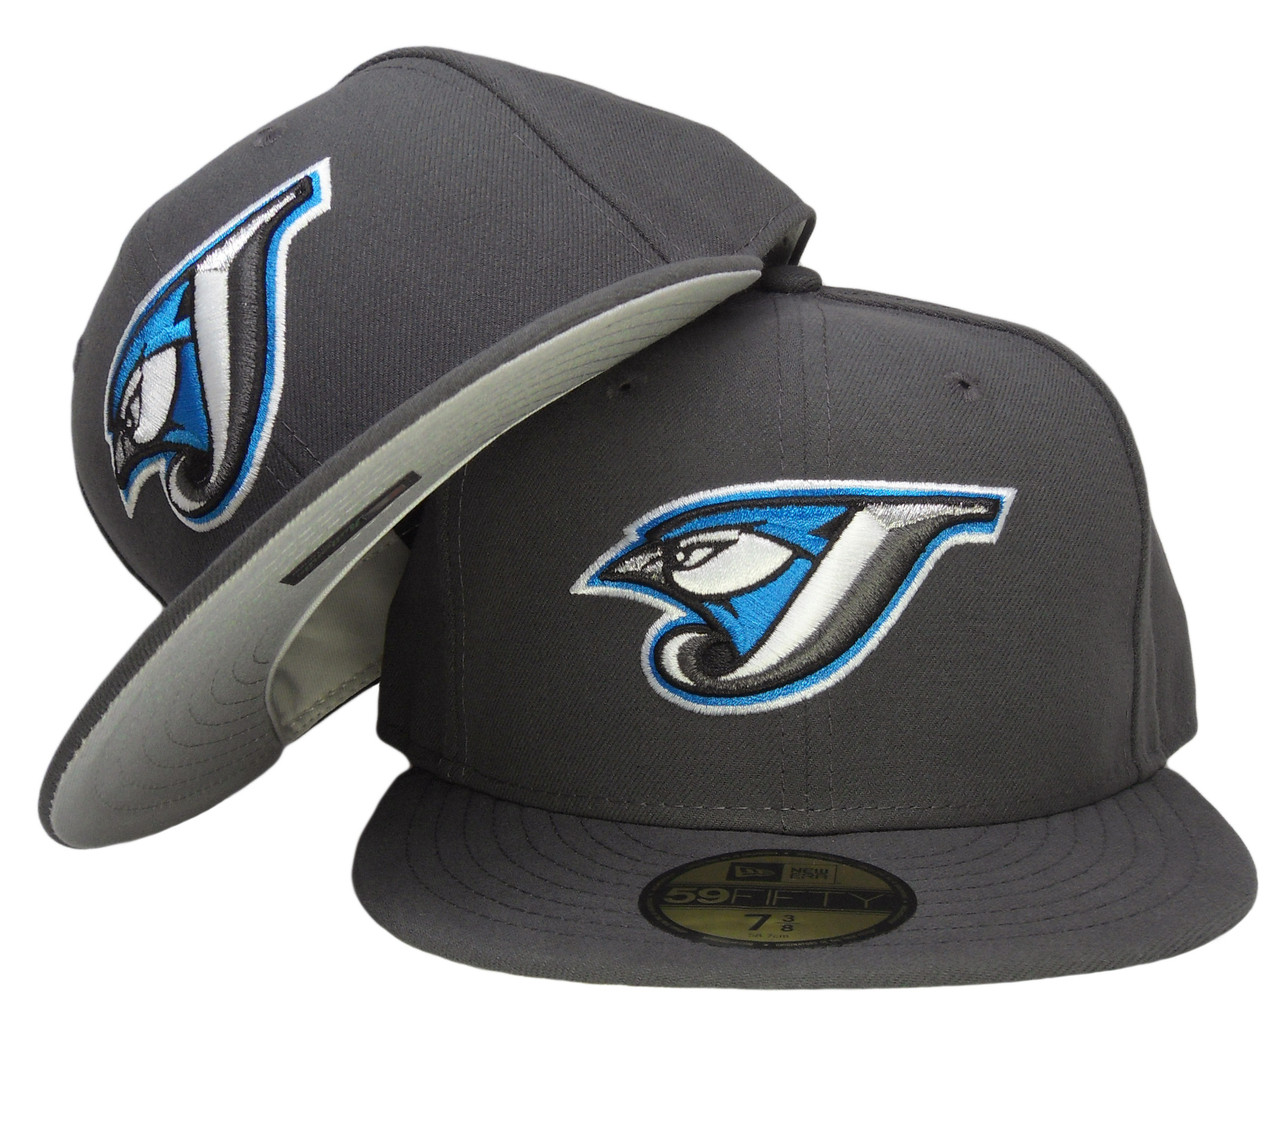 Toronto Blue Jays New Era Gray Bottom Fitted Hat - Graphite Gray ... ba23d84d5d9